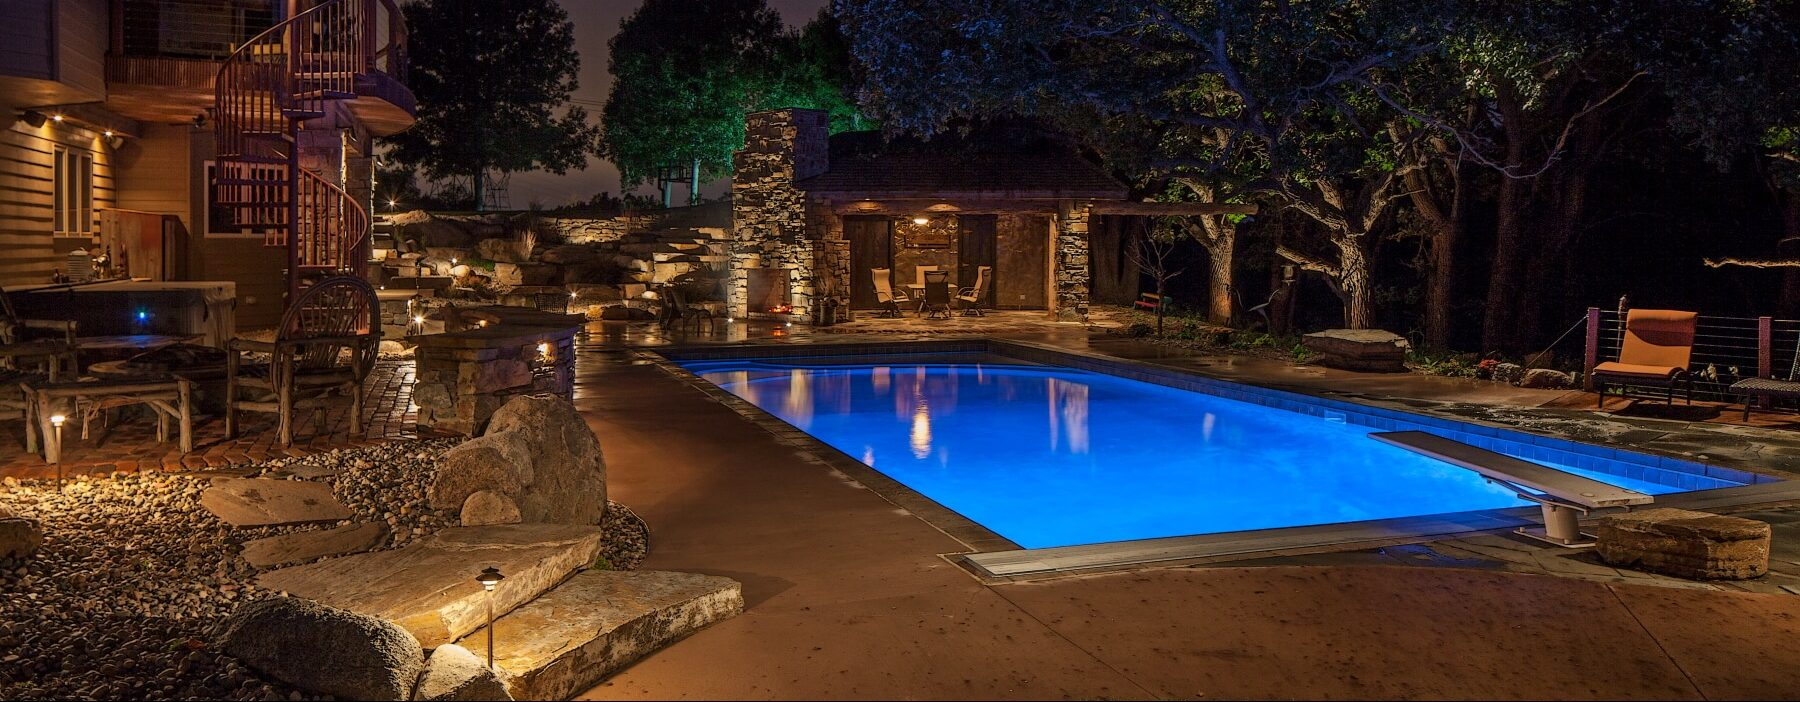 pool lighting design. Outdoor Lighting Design Omaha NE Pool P